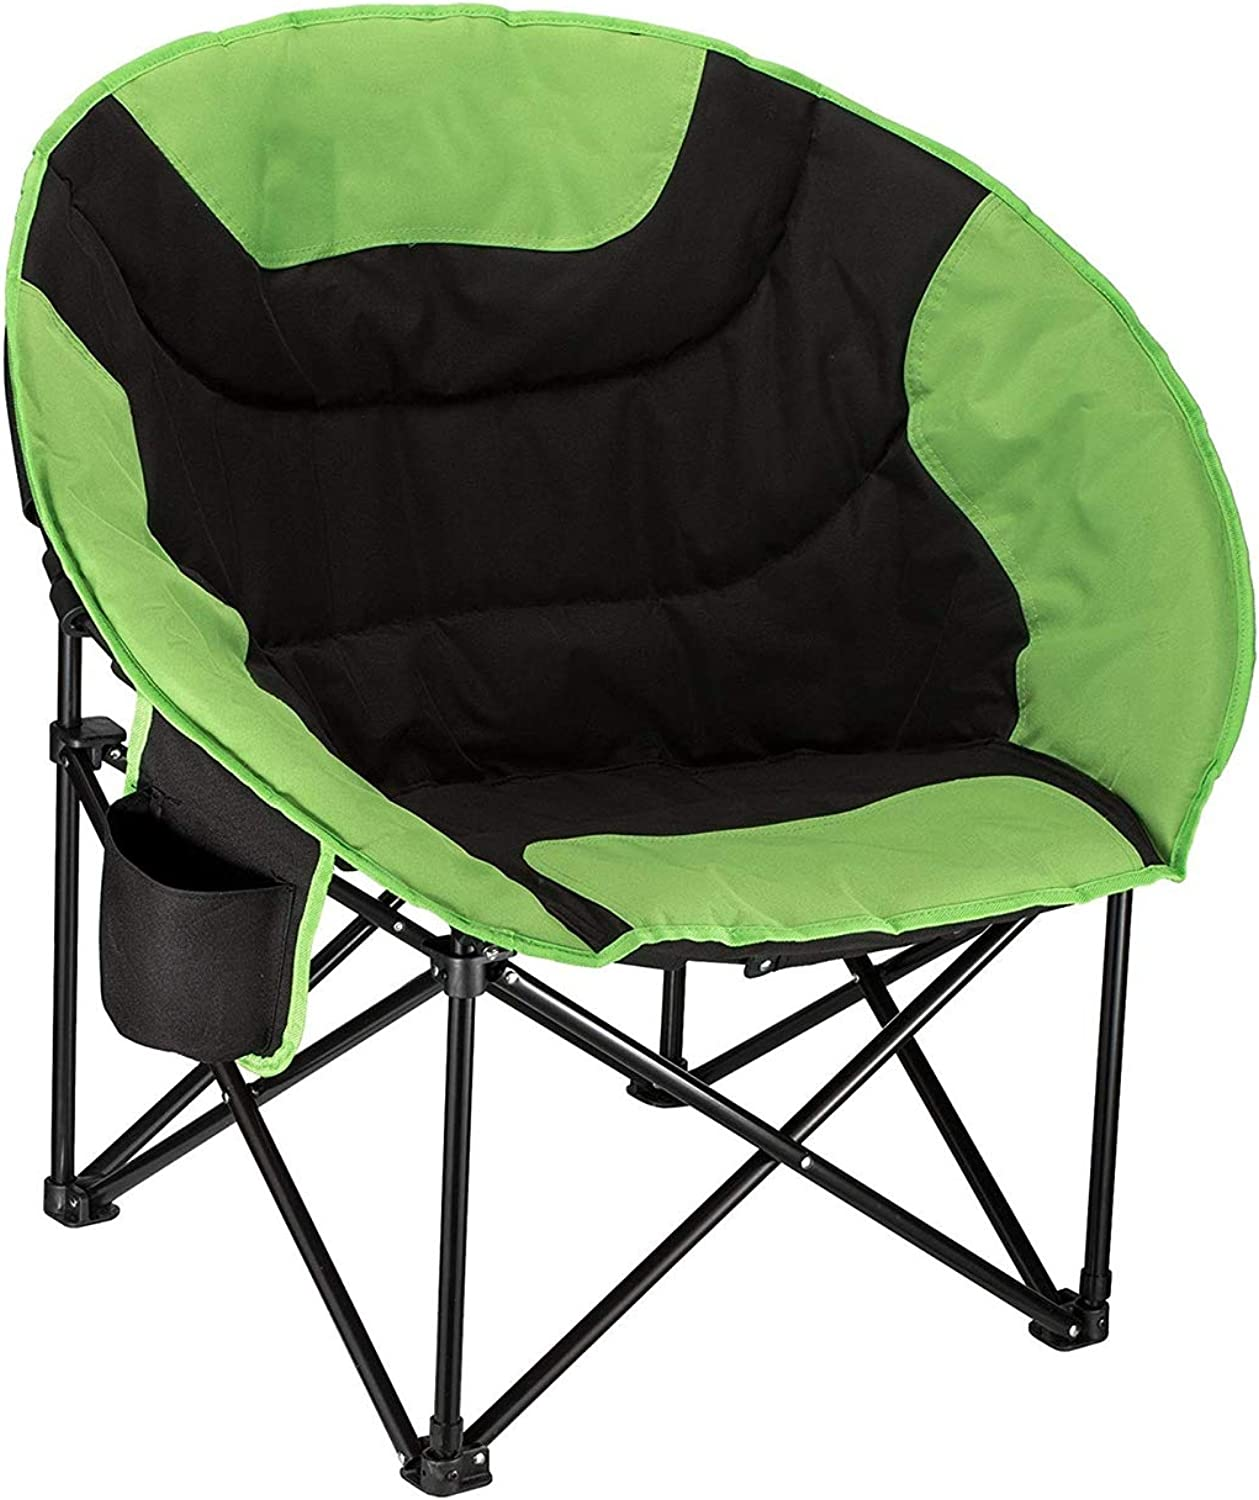 Camping Folding Round Chair,Portable Backrest Folding Chair Frame with Cup Holder and Back Pocket